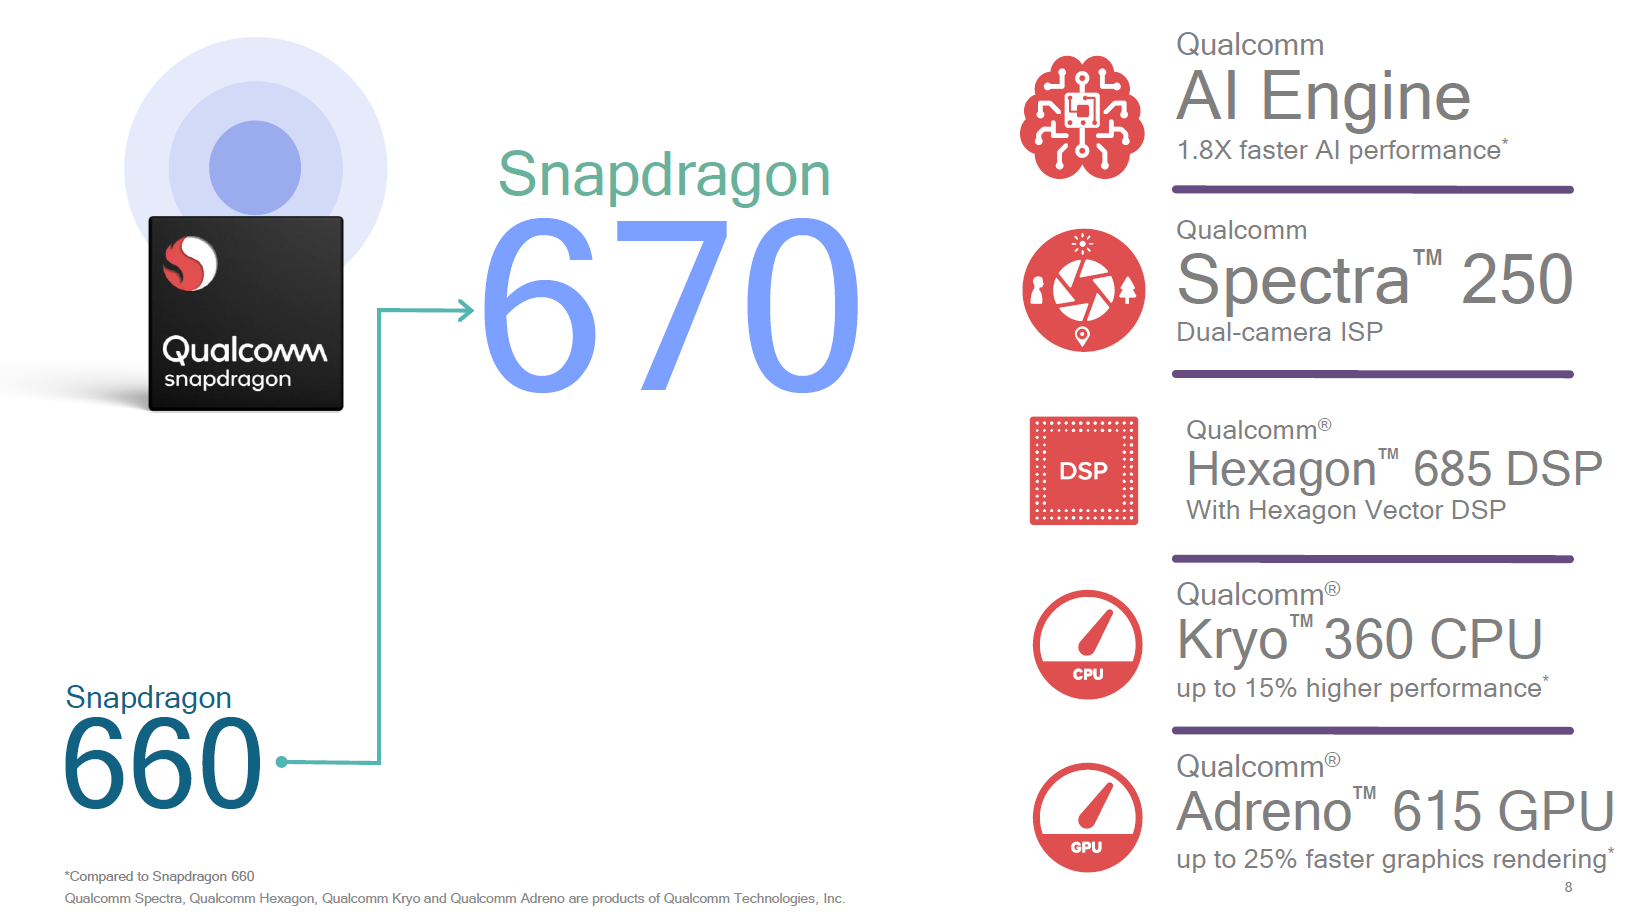 Qualcomm boosts mid-range smartphone AI with Snapdragon 670 mobile platform